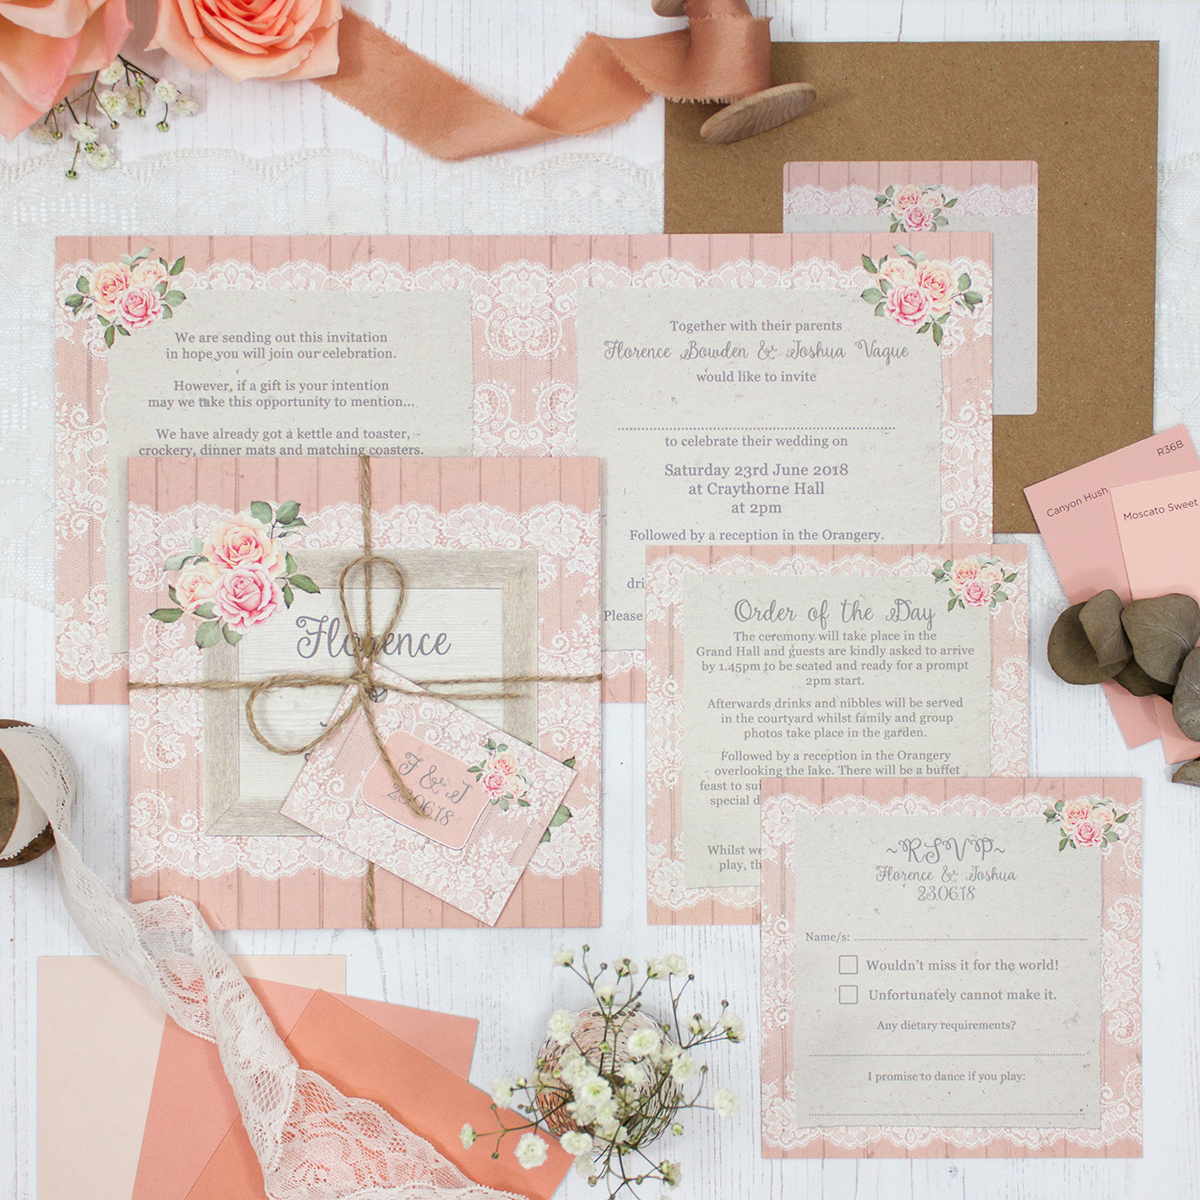 Coral Haze Wedding showing invitation